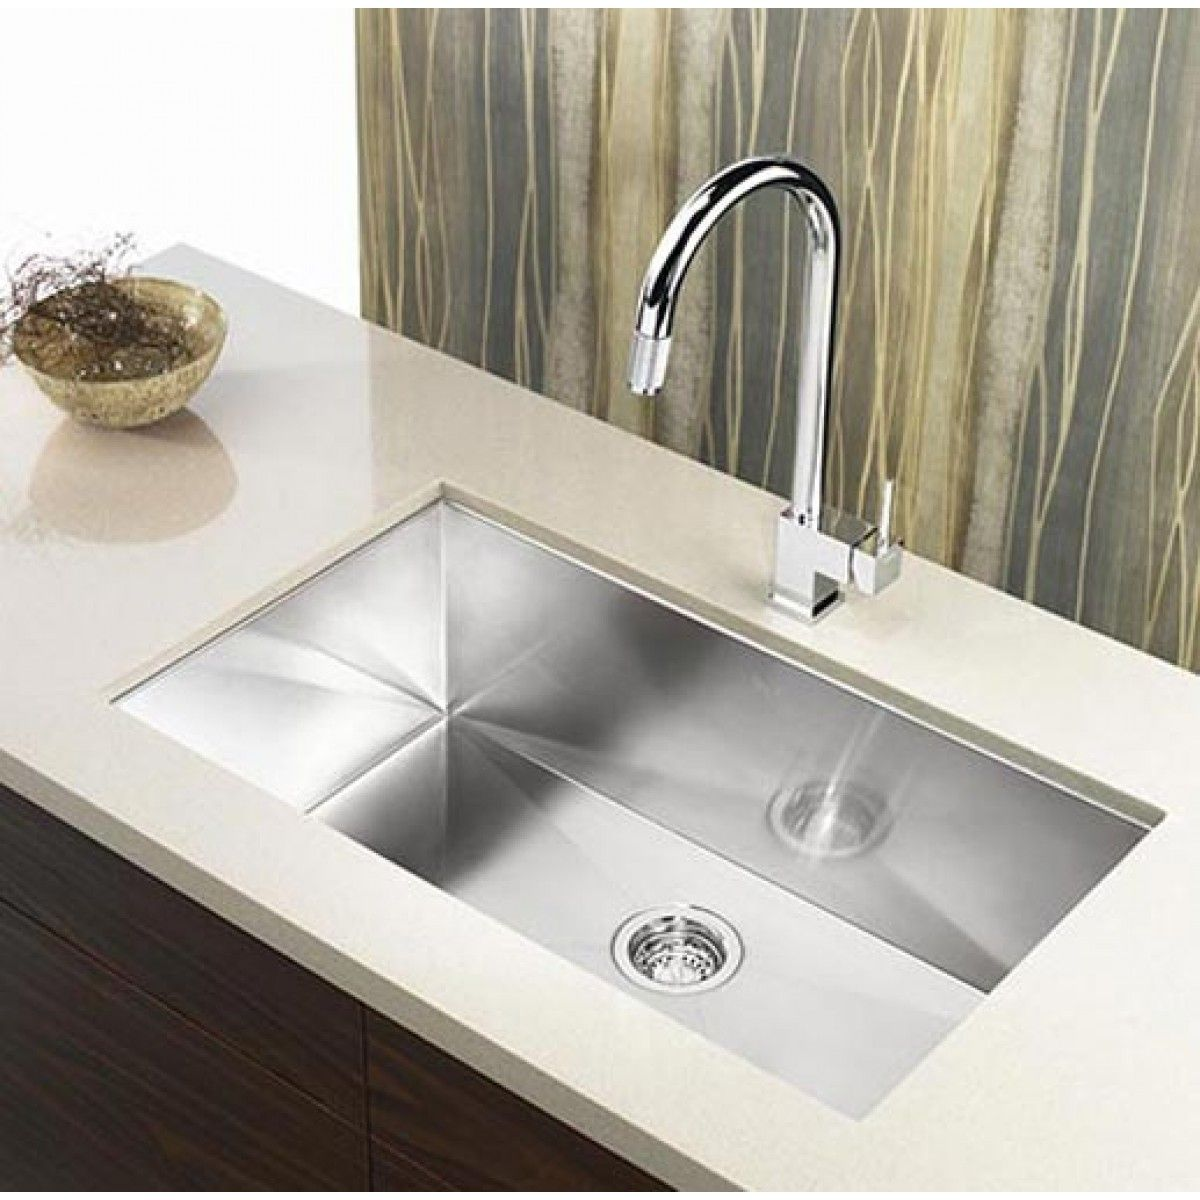 36 Inch Stainless Steel Undermount Single Bowl Kitchen Sink ...